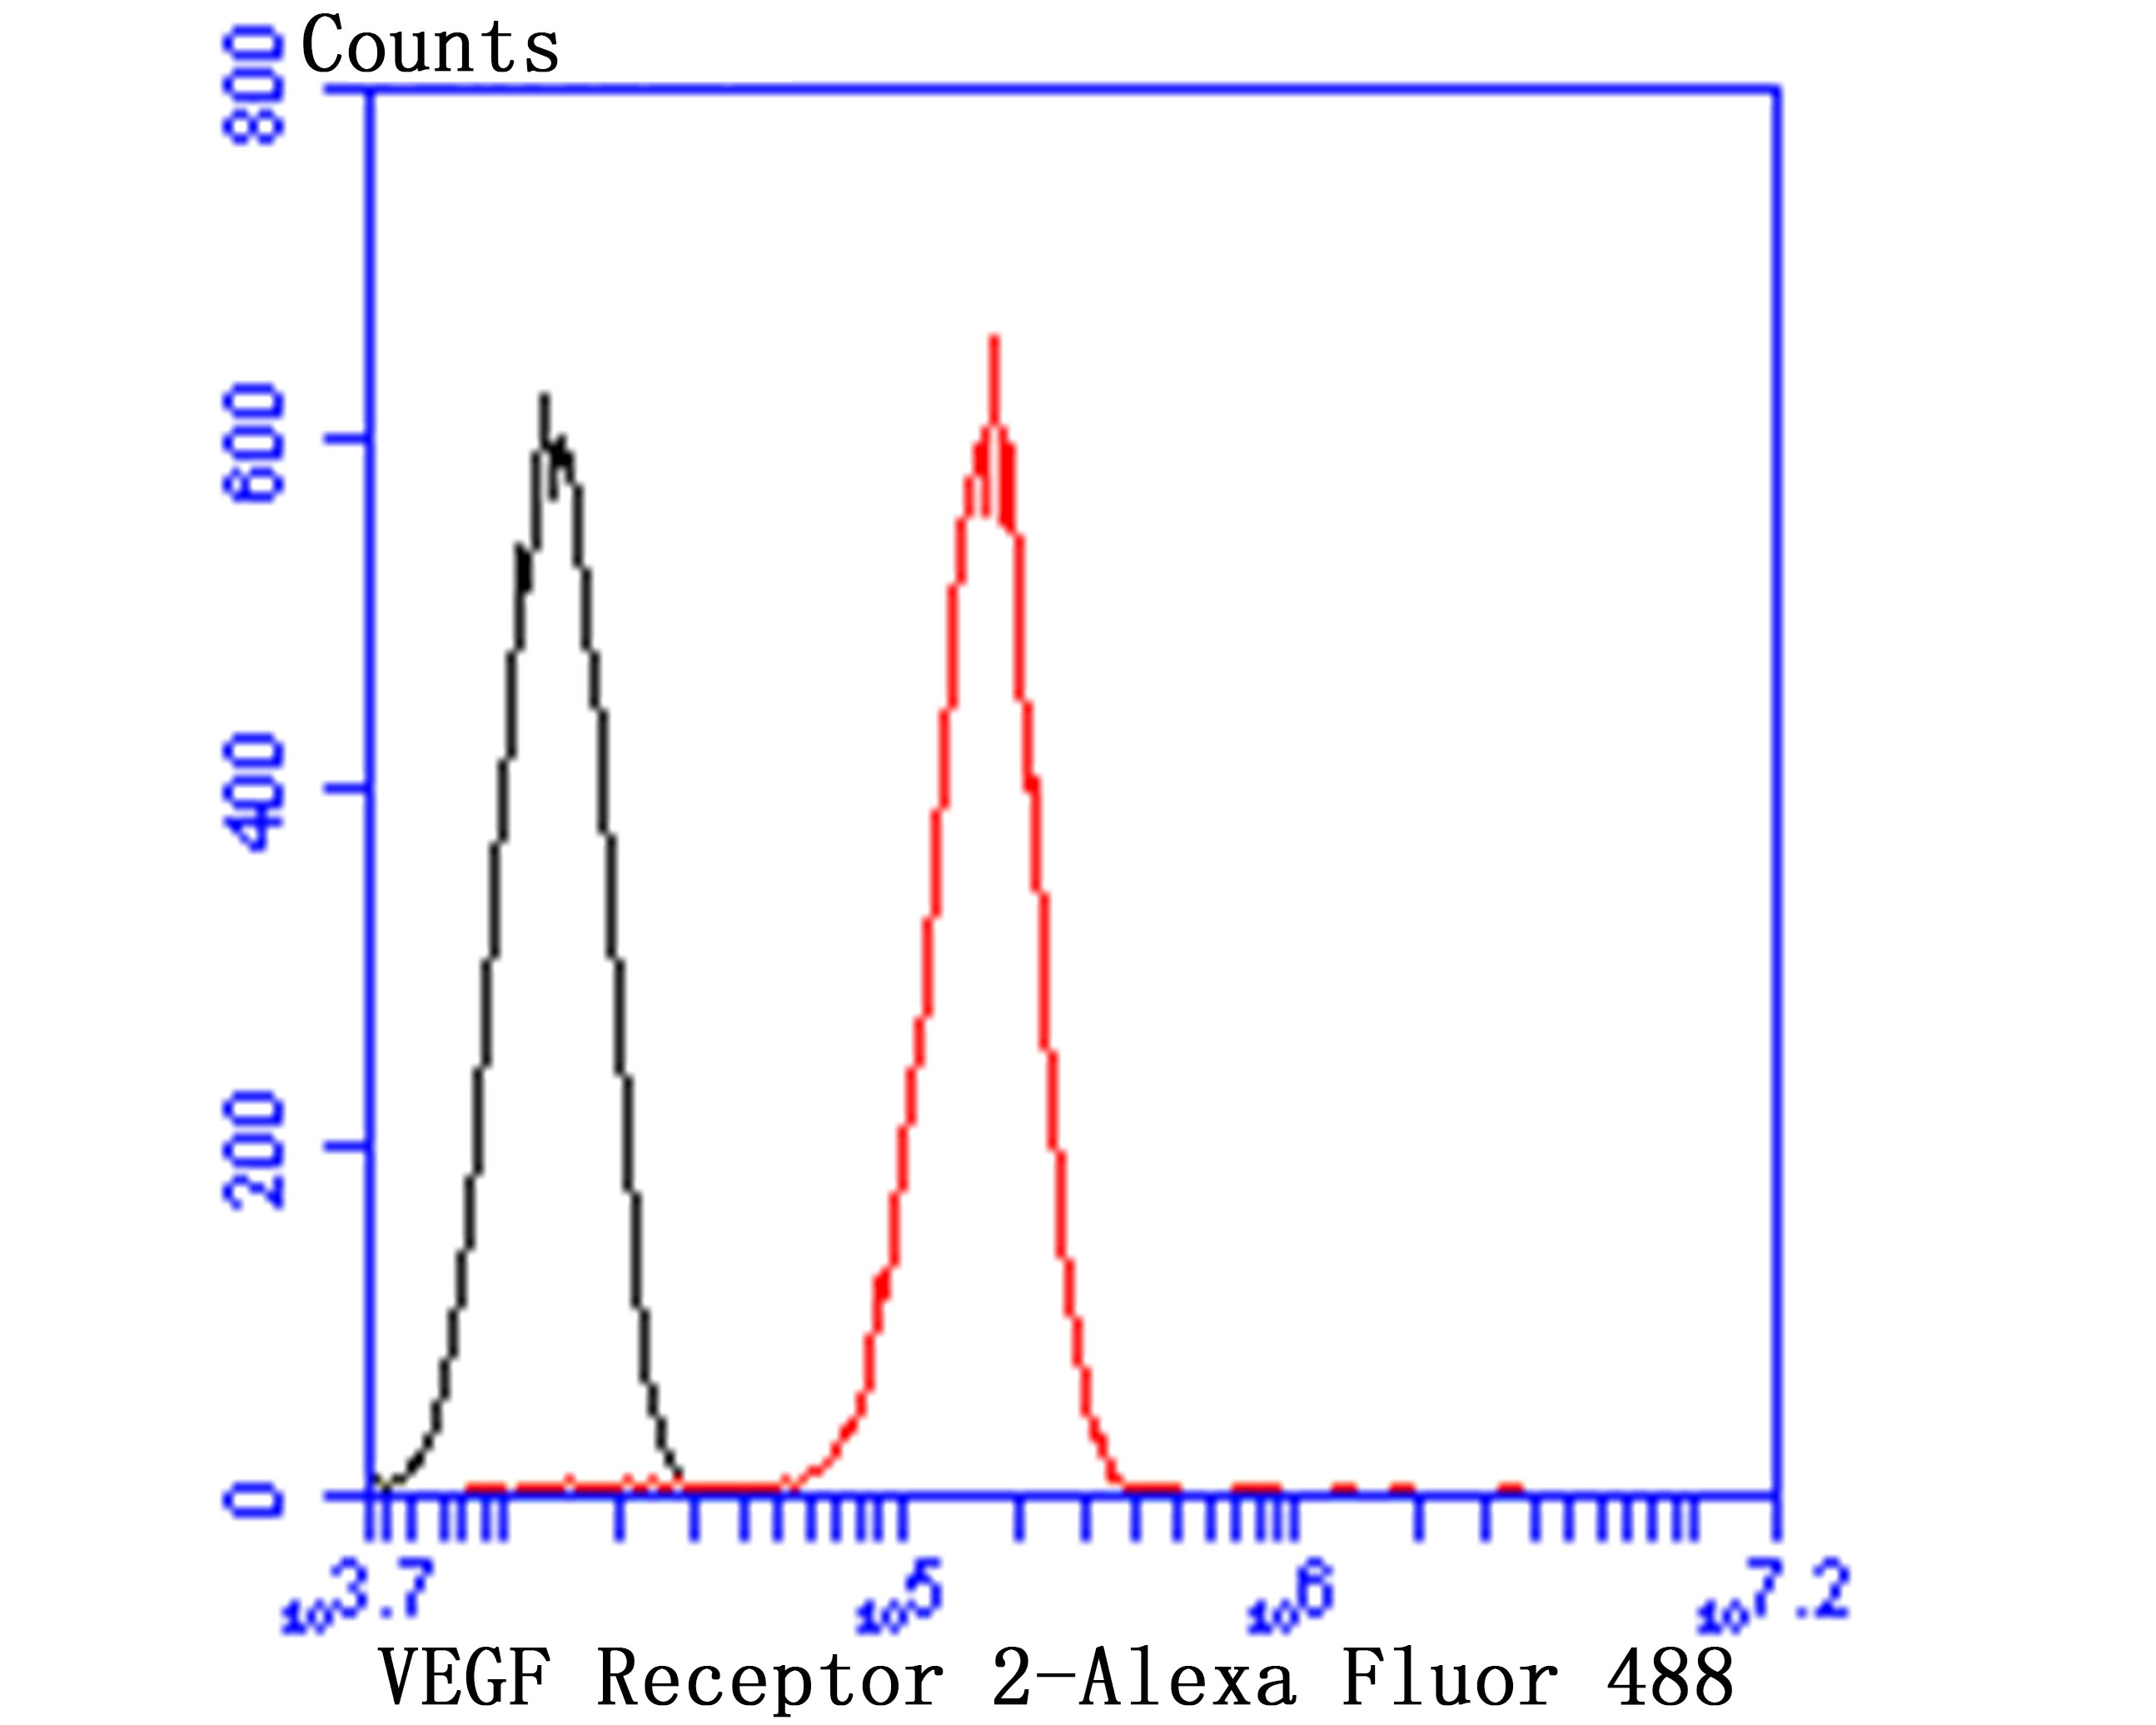 Flow cytometric analysis of VEGF Receptor 2 was done on HUVEC cells. The cells were fixed, permeabilized and stained with the primary antibody (ER1706-99, 1/50) (red). After incubation of the primary antibody at room temperature for an hour, the cells were stained with a Alexa Fluor®488 conjugate-Goat anti-Rabbit IgG Secondary antibody at 1/1000 dilution for 30 minutes.Unlabelled sample was used as a control (cells without incubation with primary antibody; black).